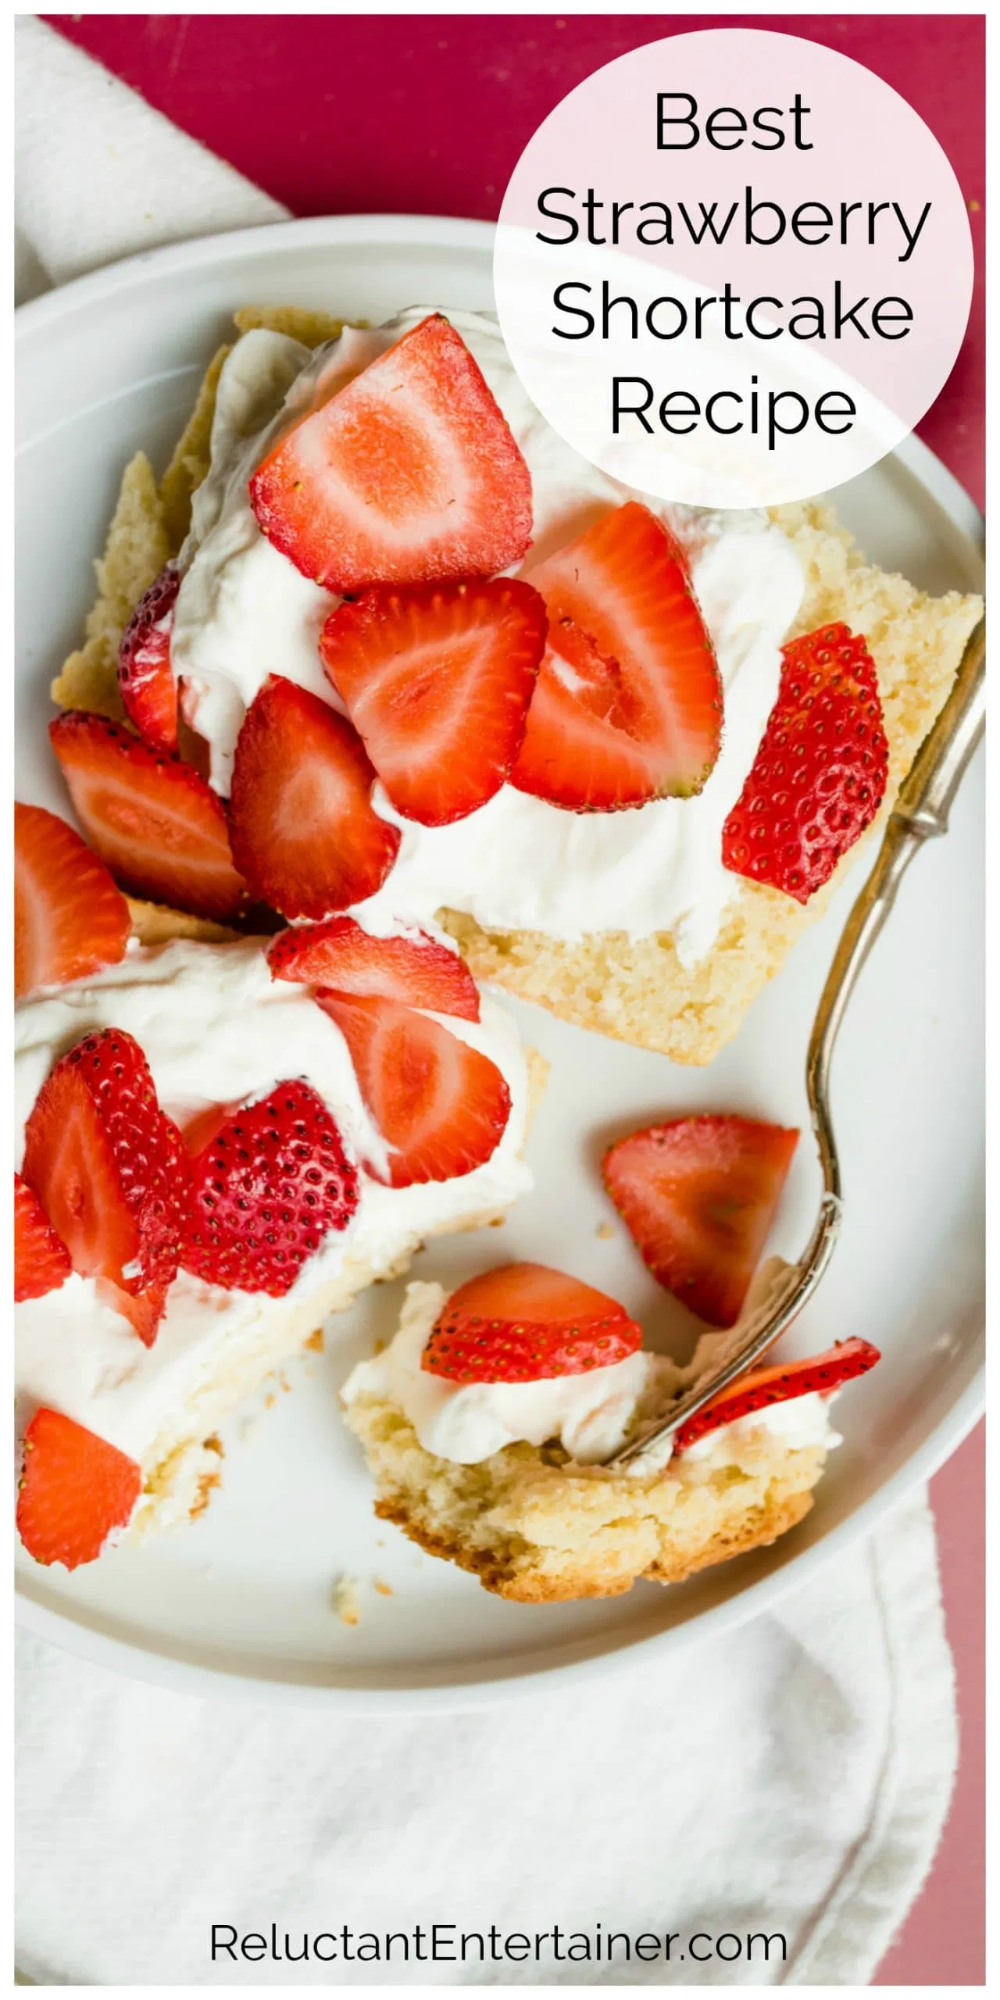 Best Strawberry Shortcake Recipe With Homemade Buttermilk Biscuits Reluctantentertainer In 2020 Strawberry Shortcake Recipes Shortcake Recipe Fruity Desserts